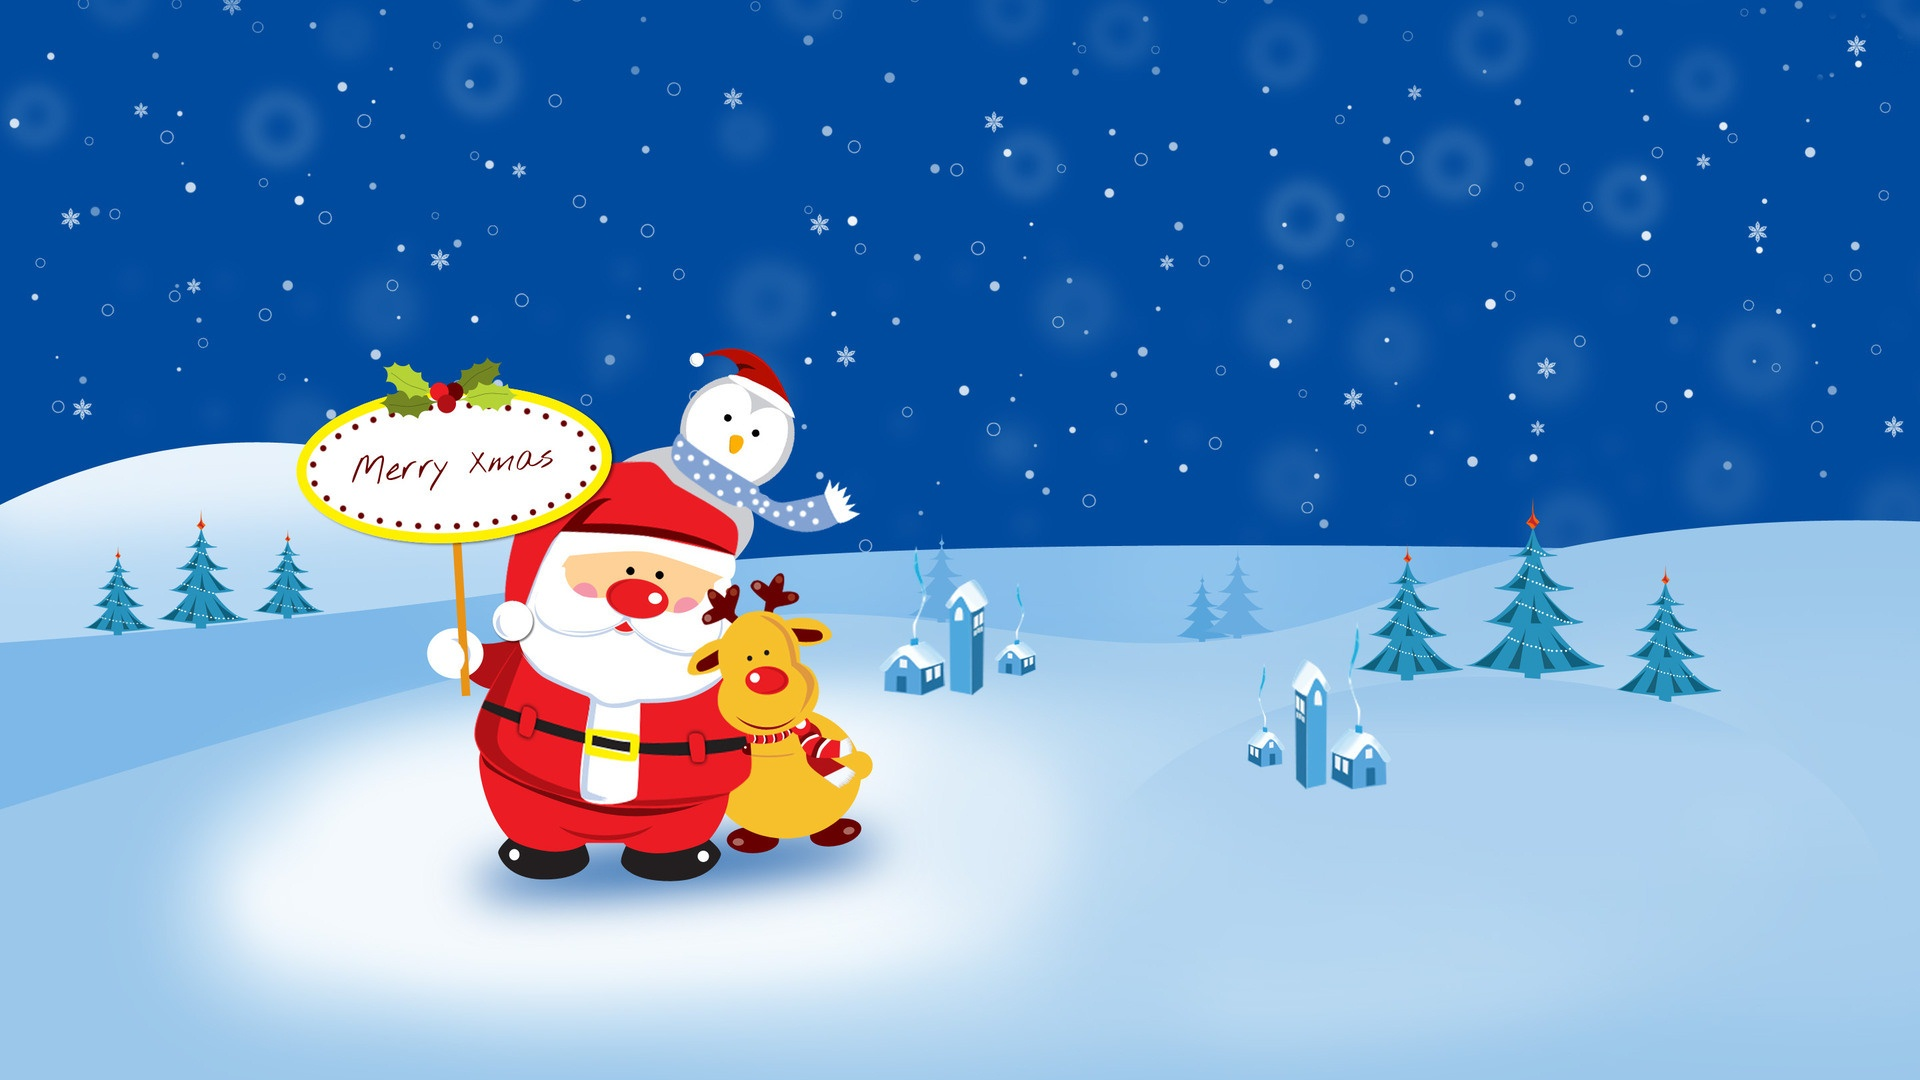 Cute Holiday s For iPhone wallpaper 1920x1080 32976 1920x1080